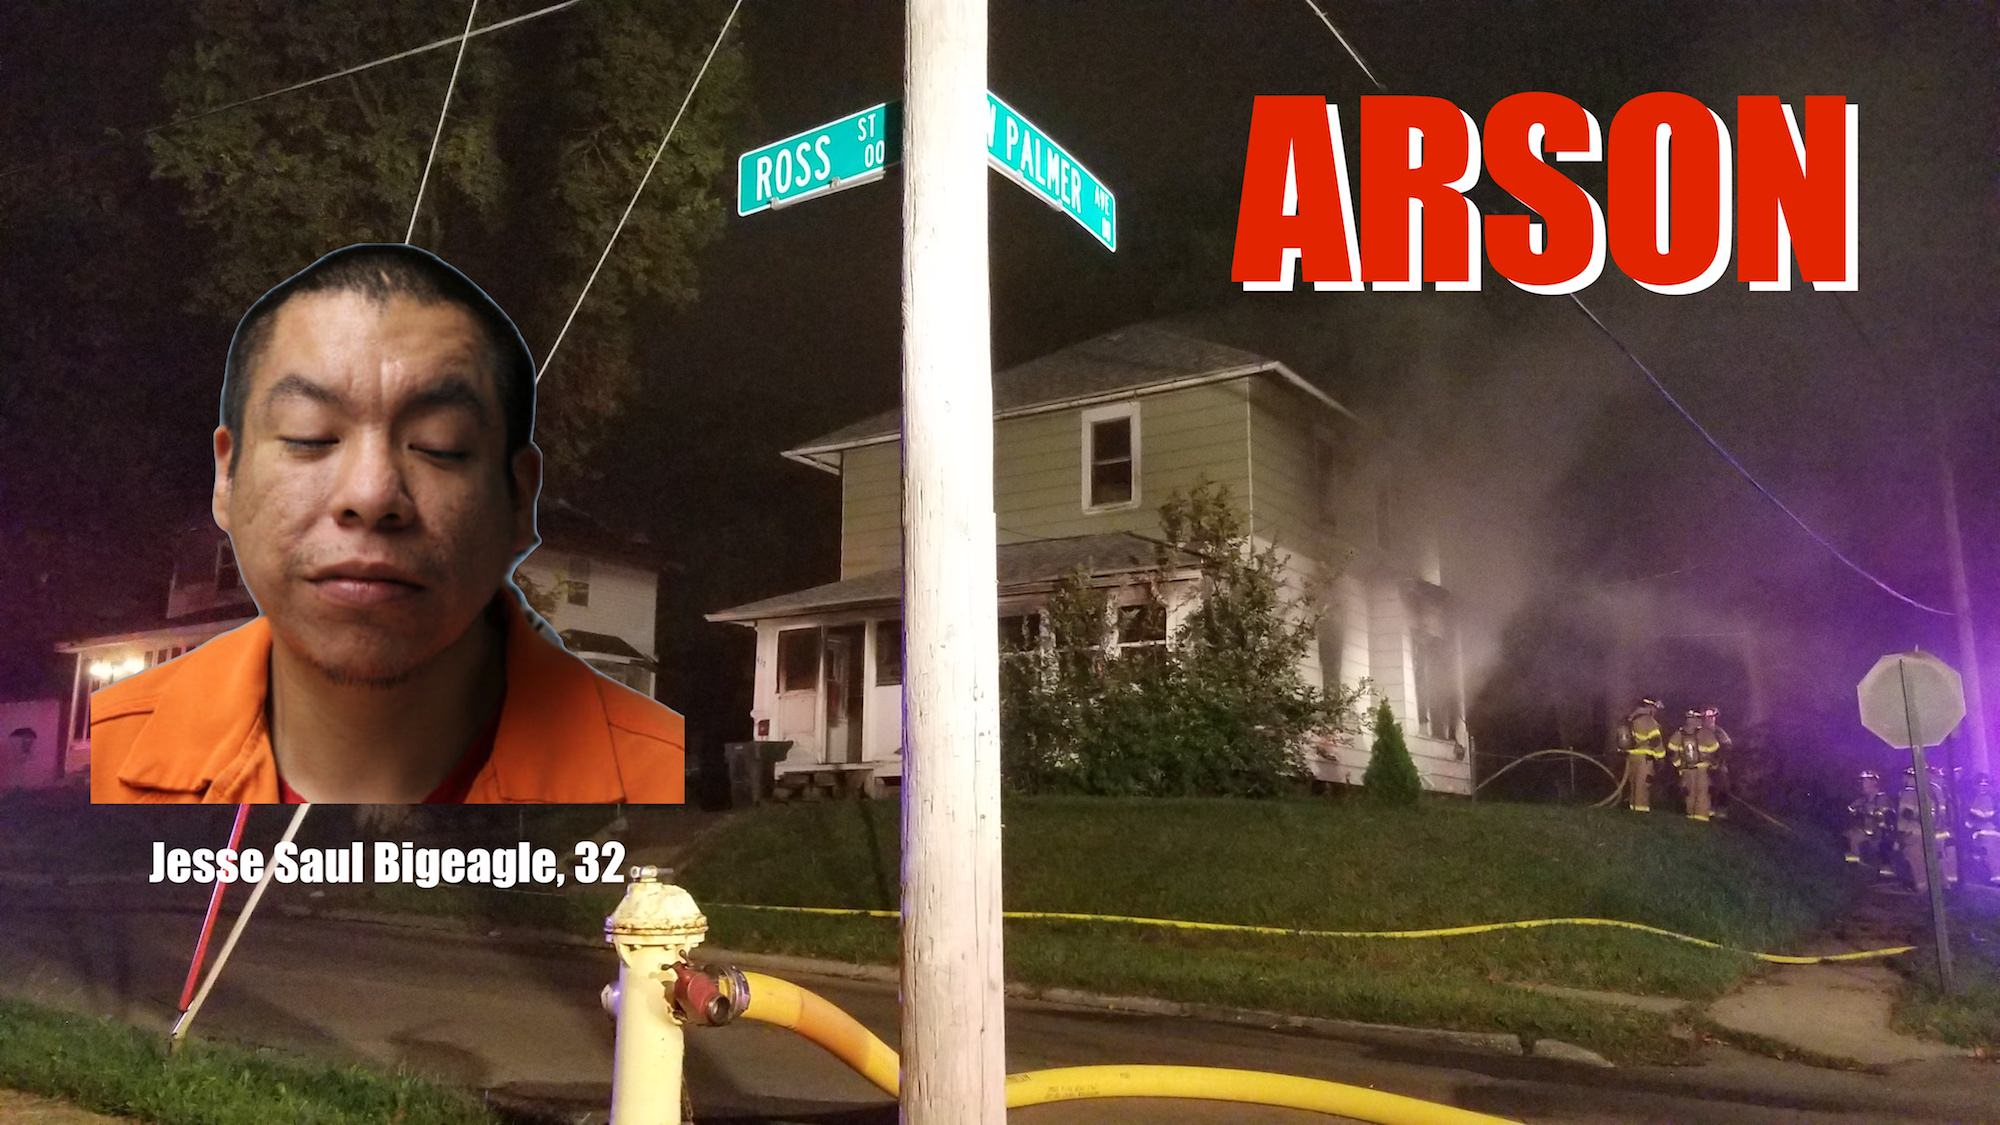 Man charged with arson after fire on Ross Street in Sioux City